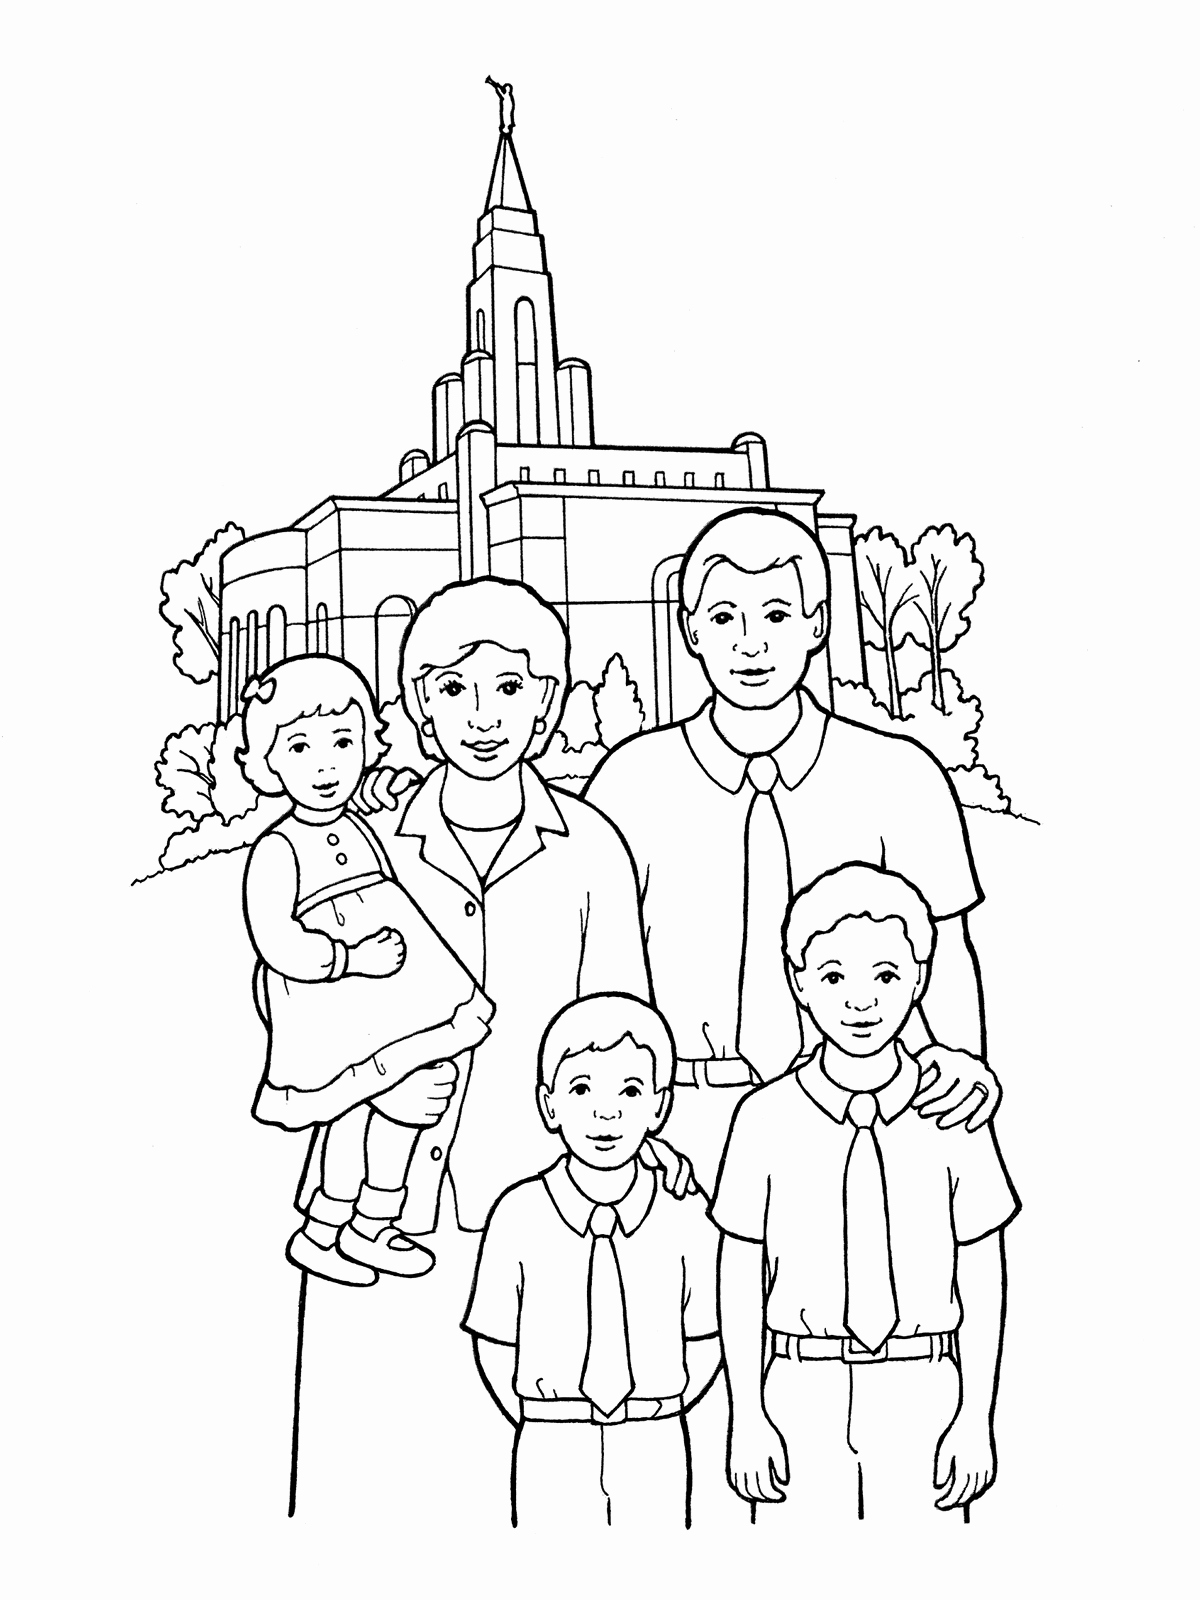 coloring family picture coloring page of a family coloring home picture coloring family